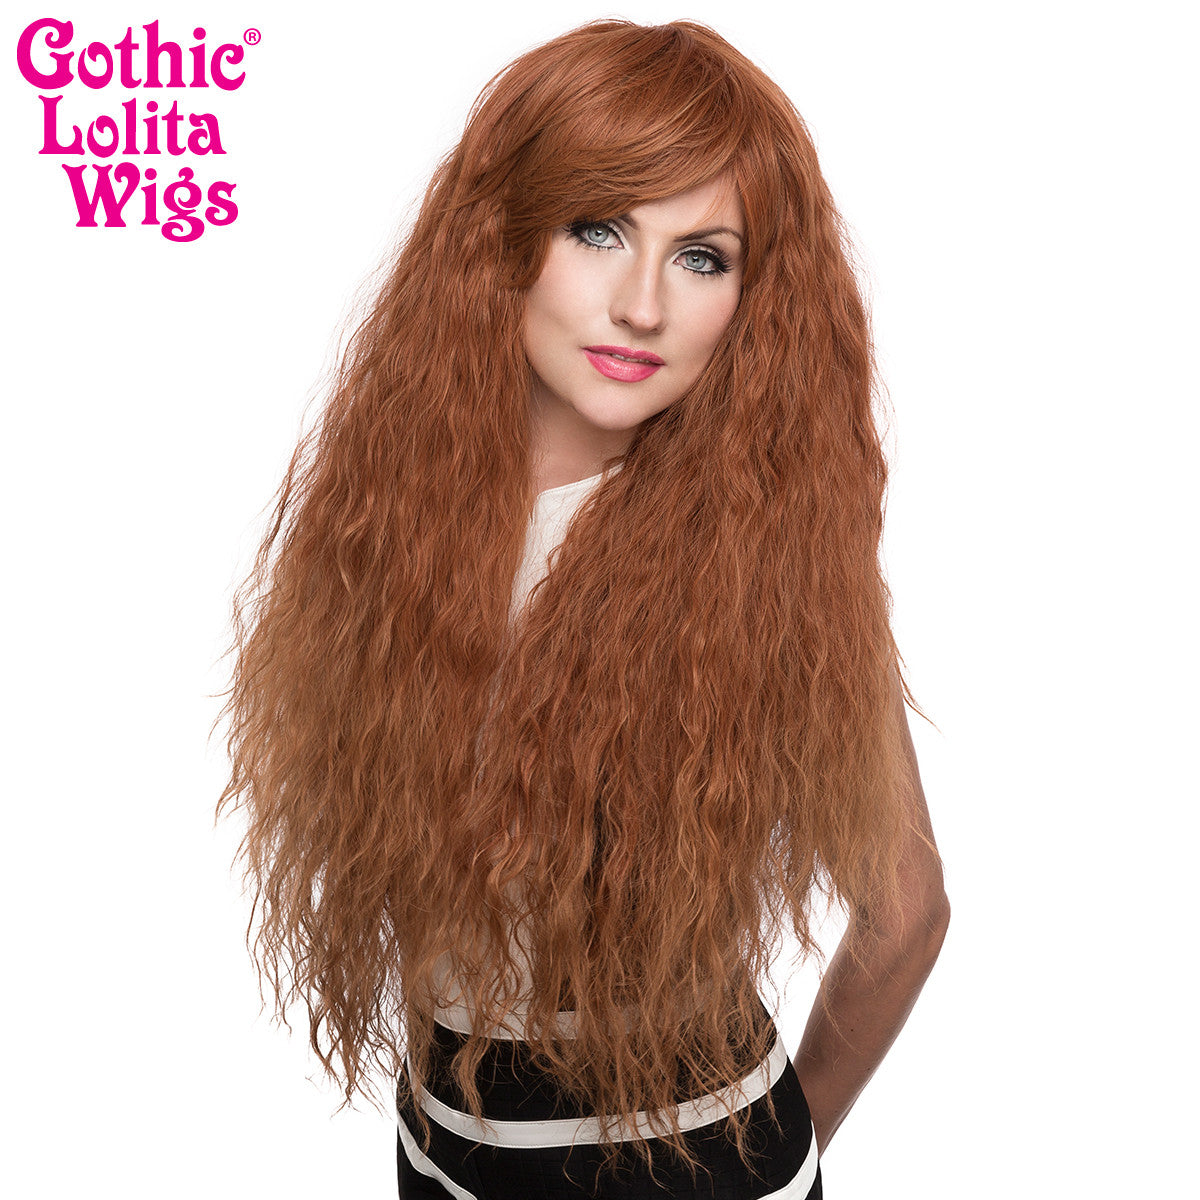 Gothic Lolita Wigs Store Rhapsody Collection Auburn